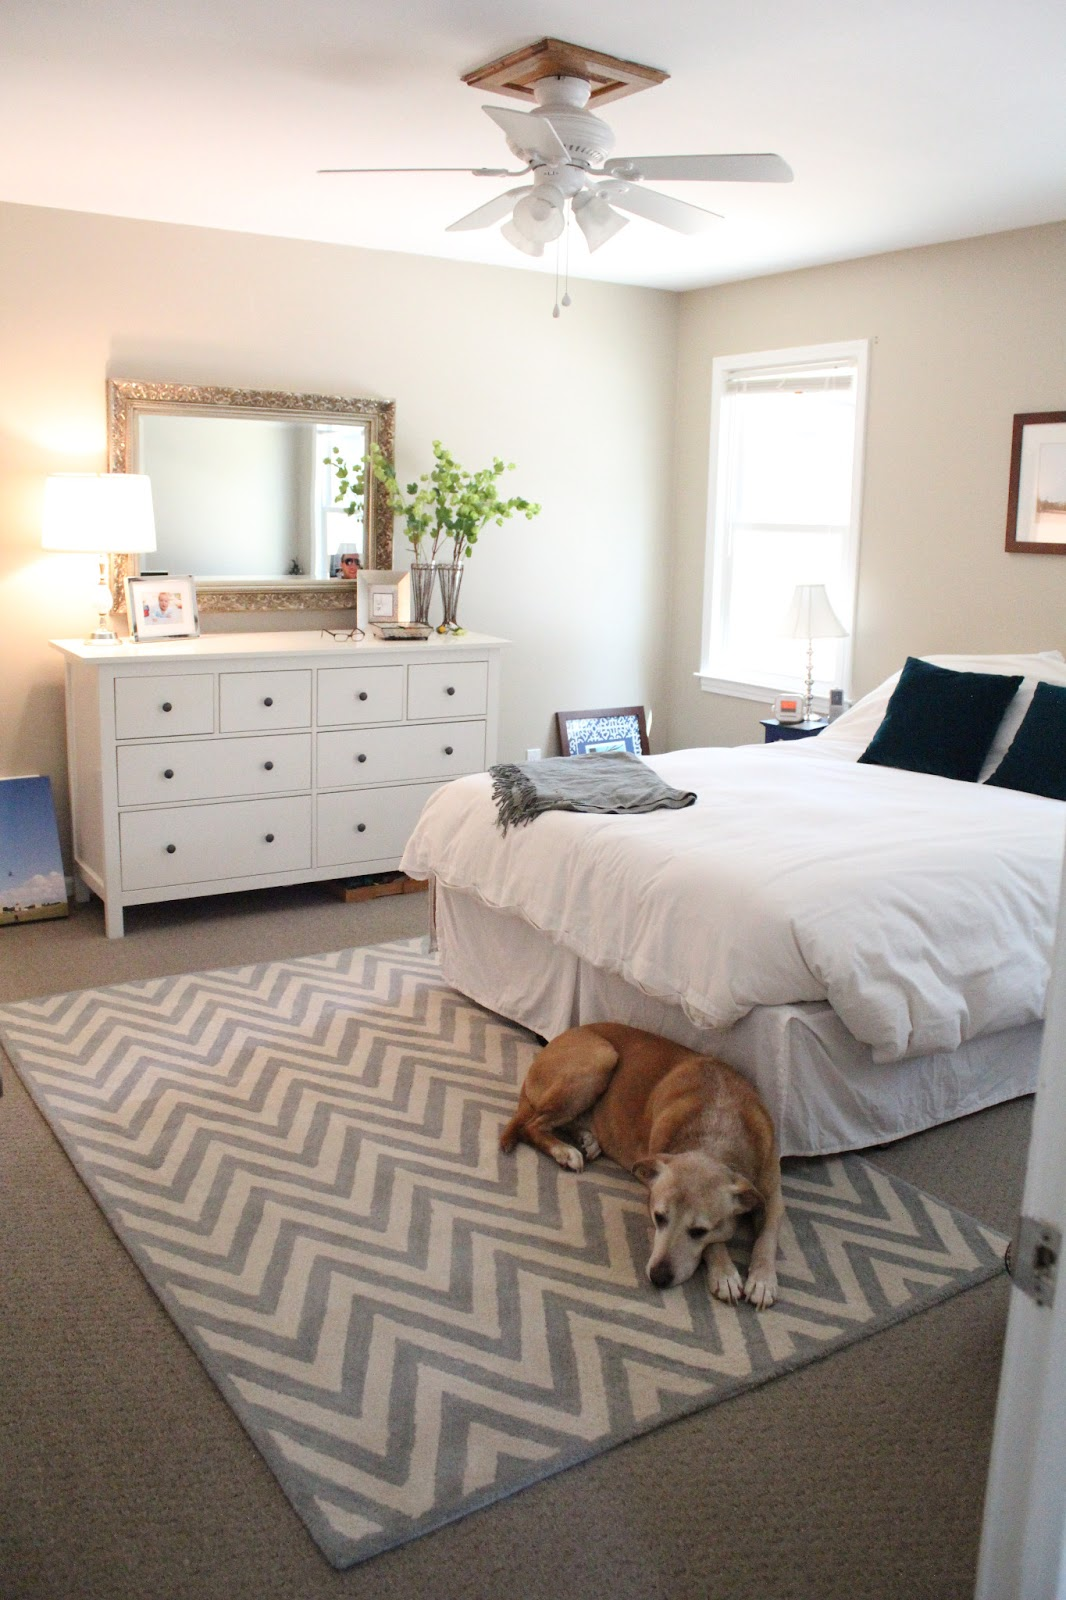 Ten june our rental house a master bedroom tour for Room decor ideas simple